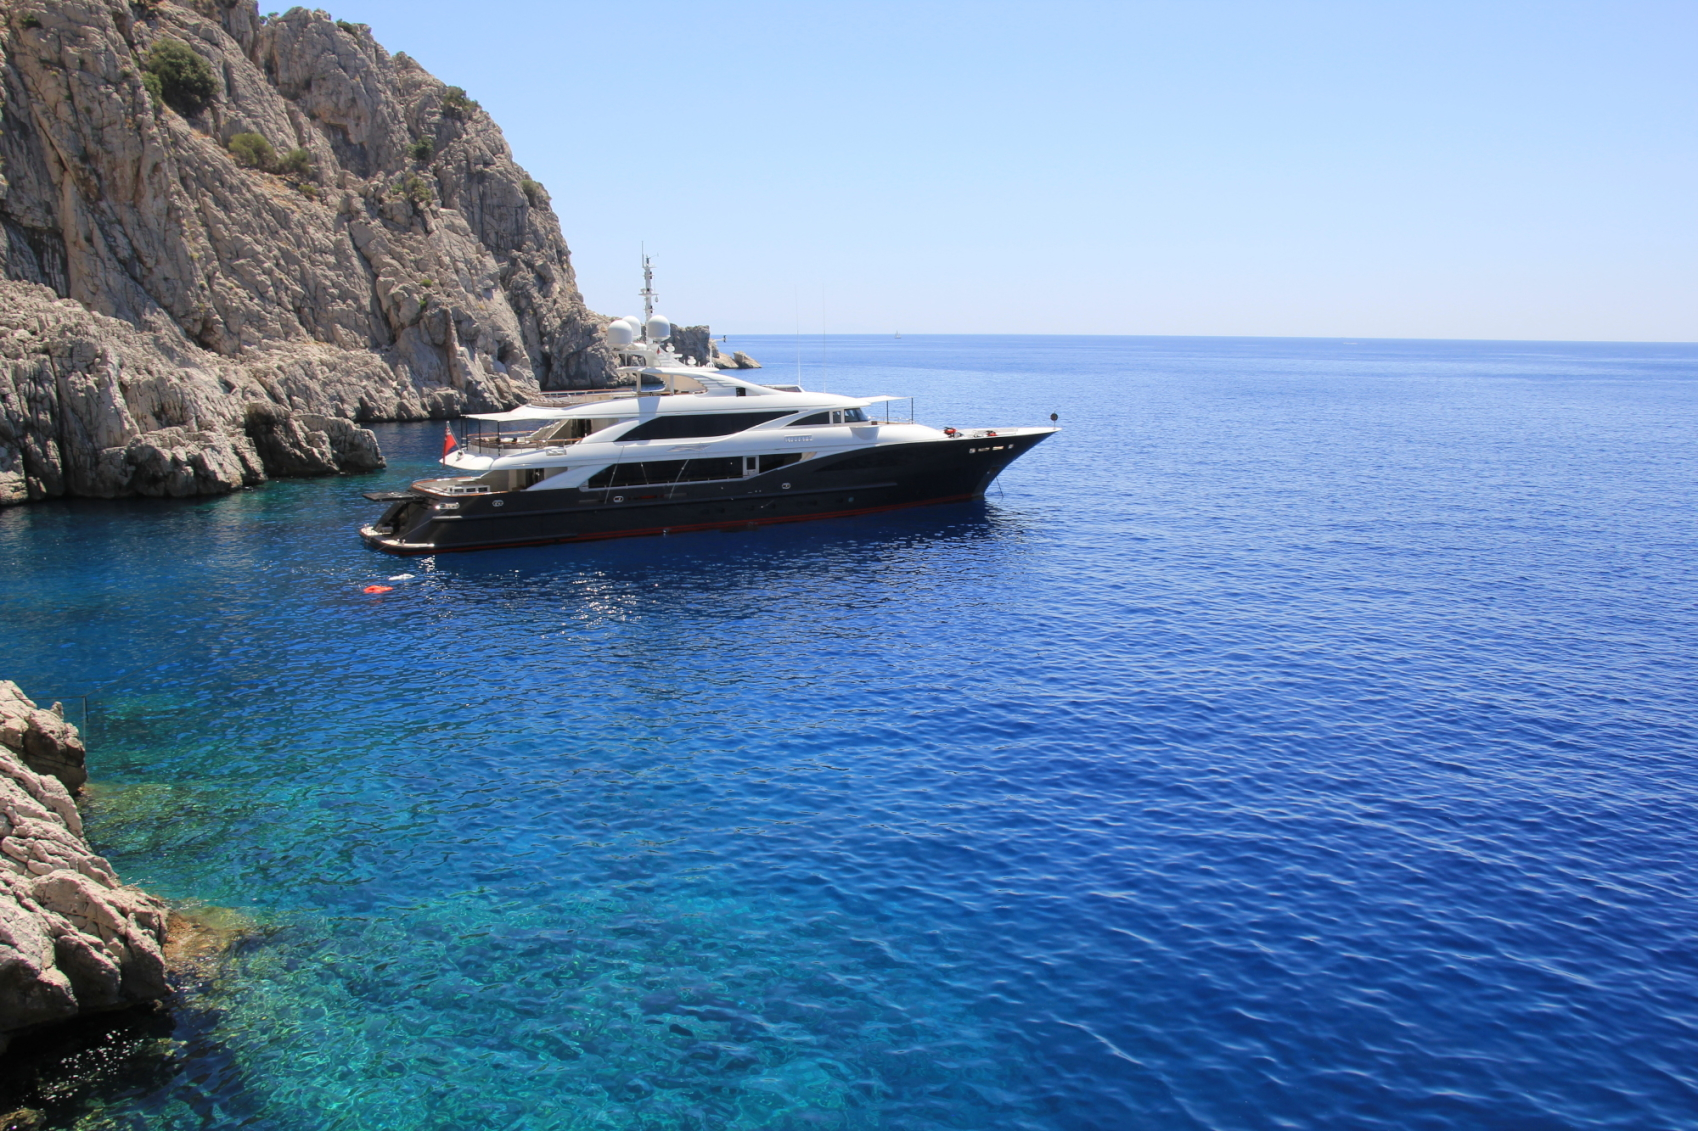 Liberty yacht for charter at anchor in mediterranean sea off coast